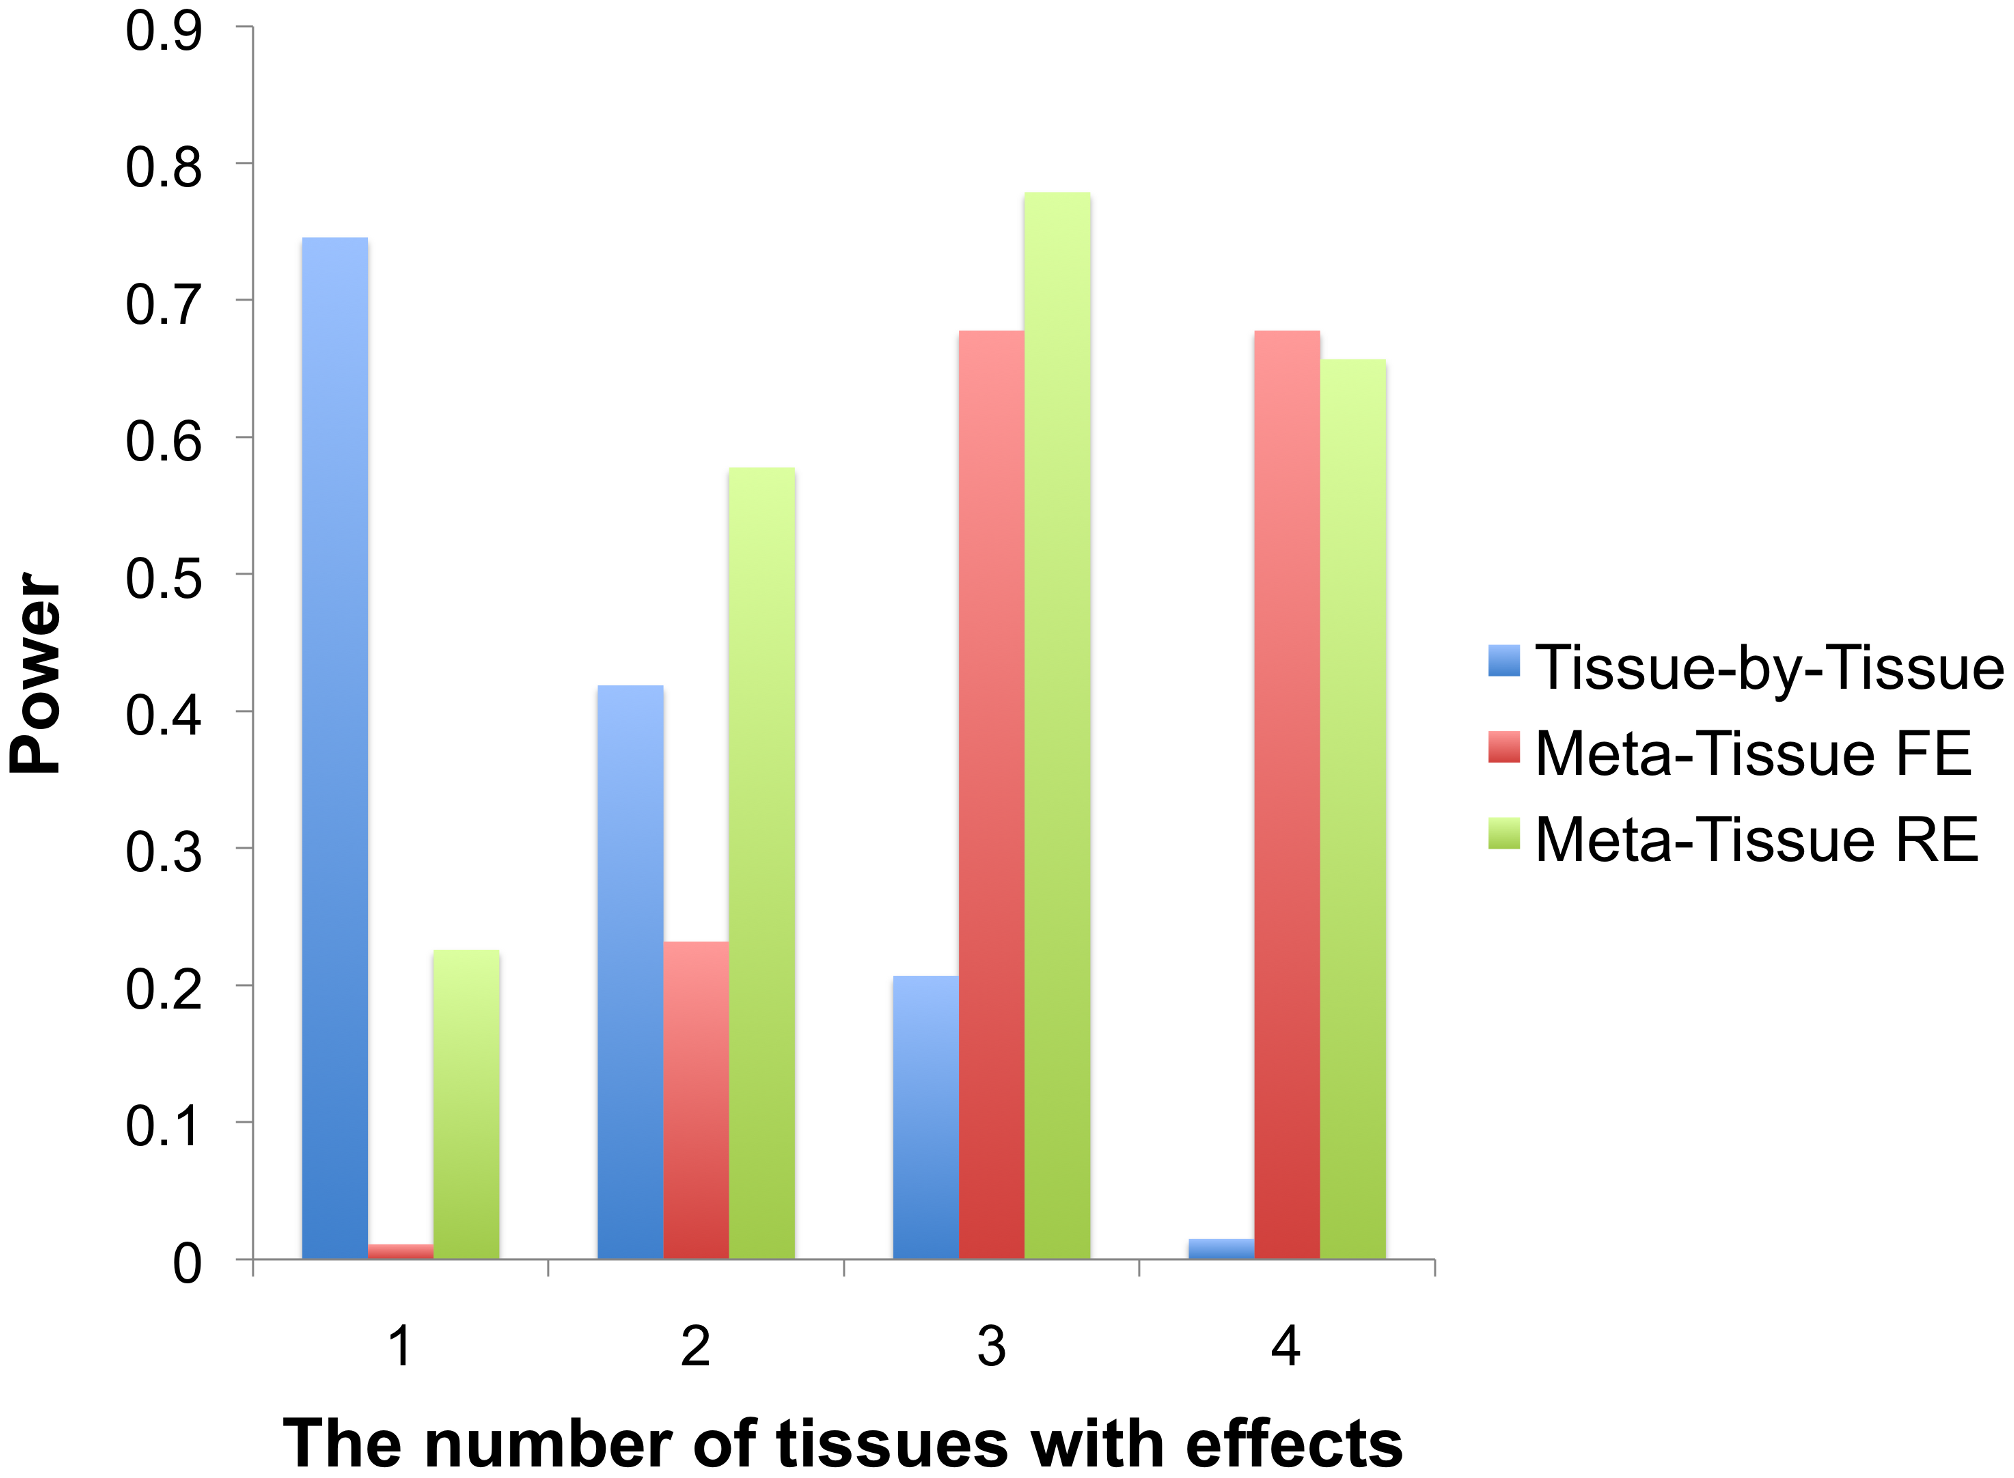 Power comparison between the tissue-by-tissue approach, Meta-Tissue fixed effects model (FE), and Meta-Tissue random effects model (RE) using simulated data.